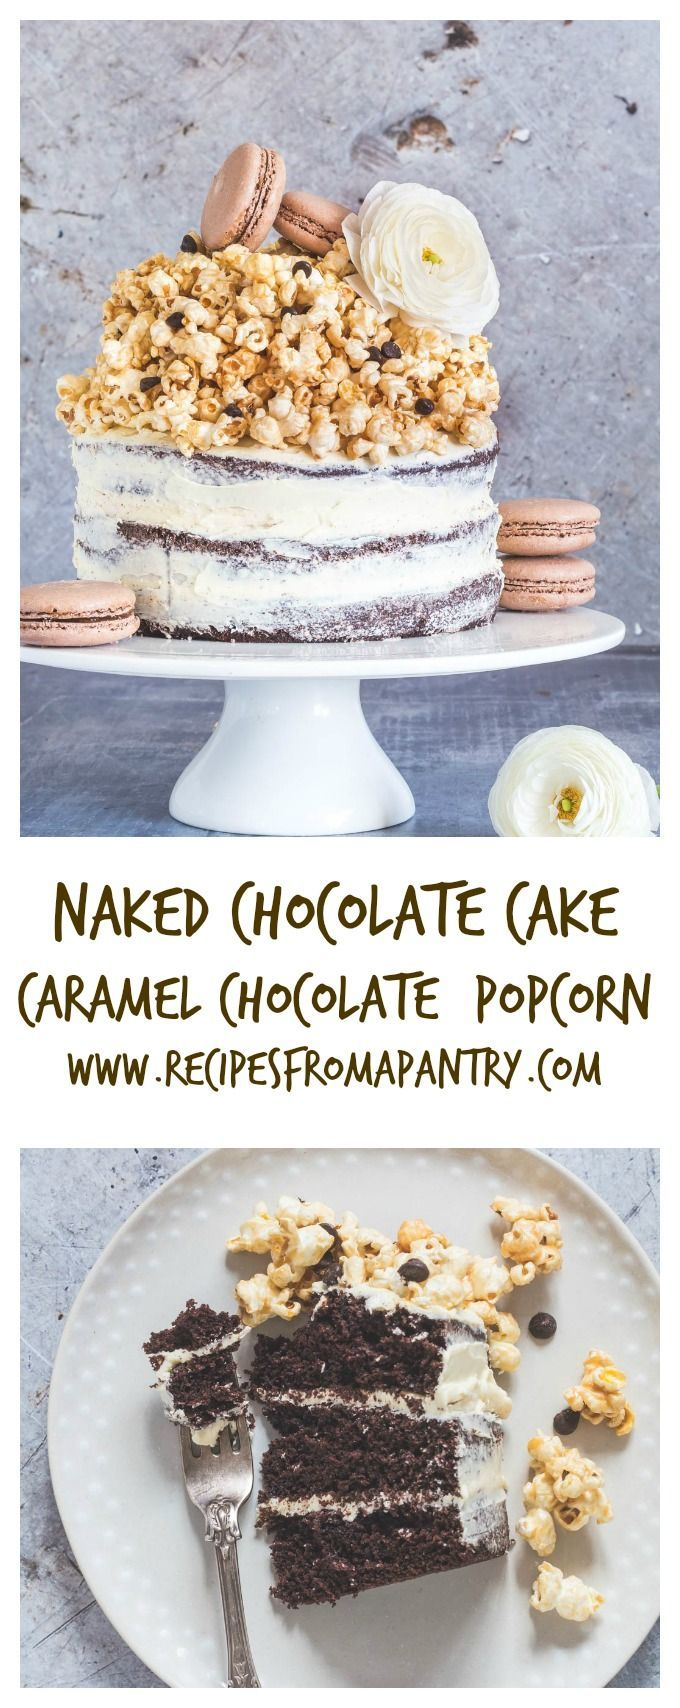 The best naked chocolate layer cake with caramel chocolate chip popcorn, chocolate chunks and a vanilla buttercream icing. A triple chocolate cake recipe | Recipes From A Pantry